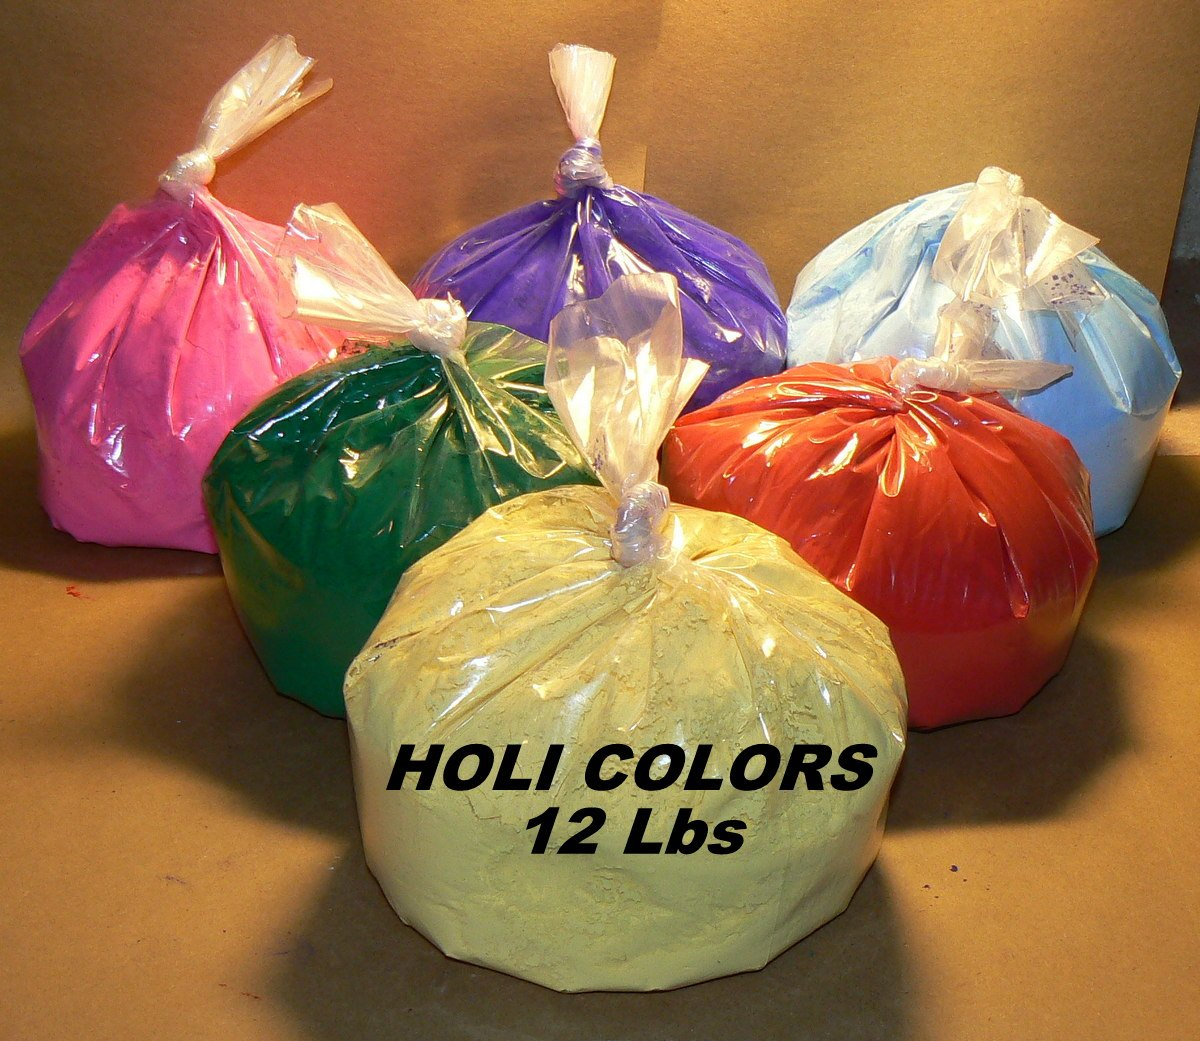 HOLI Colors 12 Lbs 6 colors bharat online brand only avalable from this store (2lbs ea color) Green, Violet , Pink, Red, Blue, and Yellow- SHIPS FROM LOS ANGELES 3 TO 6 DAYS DELIVERY